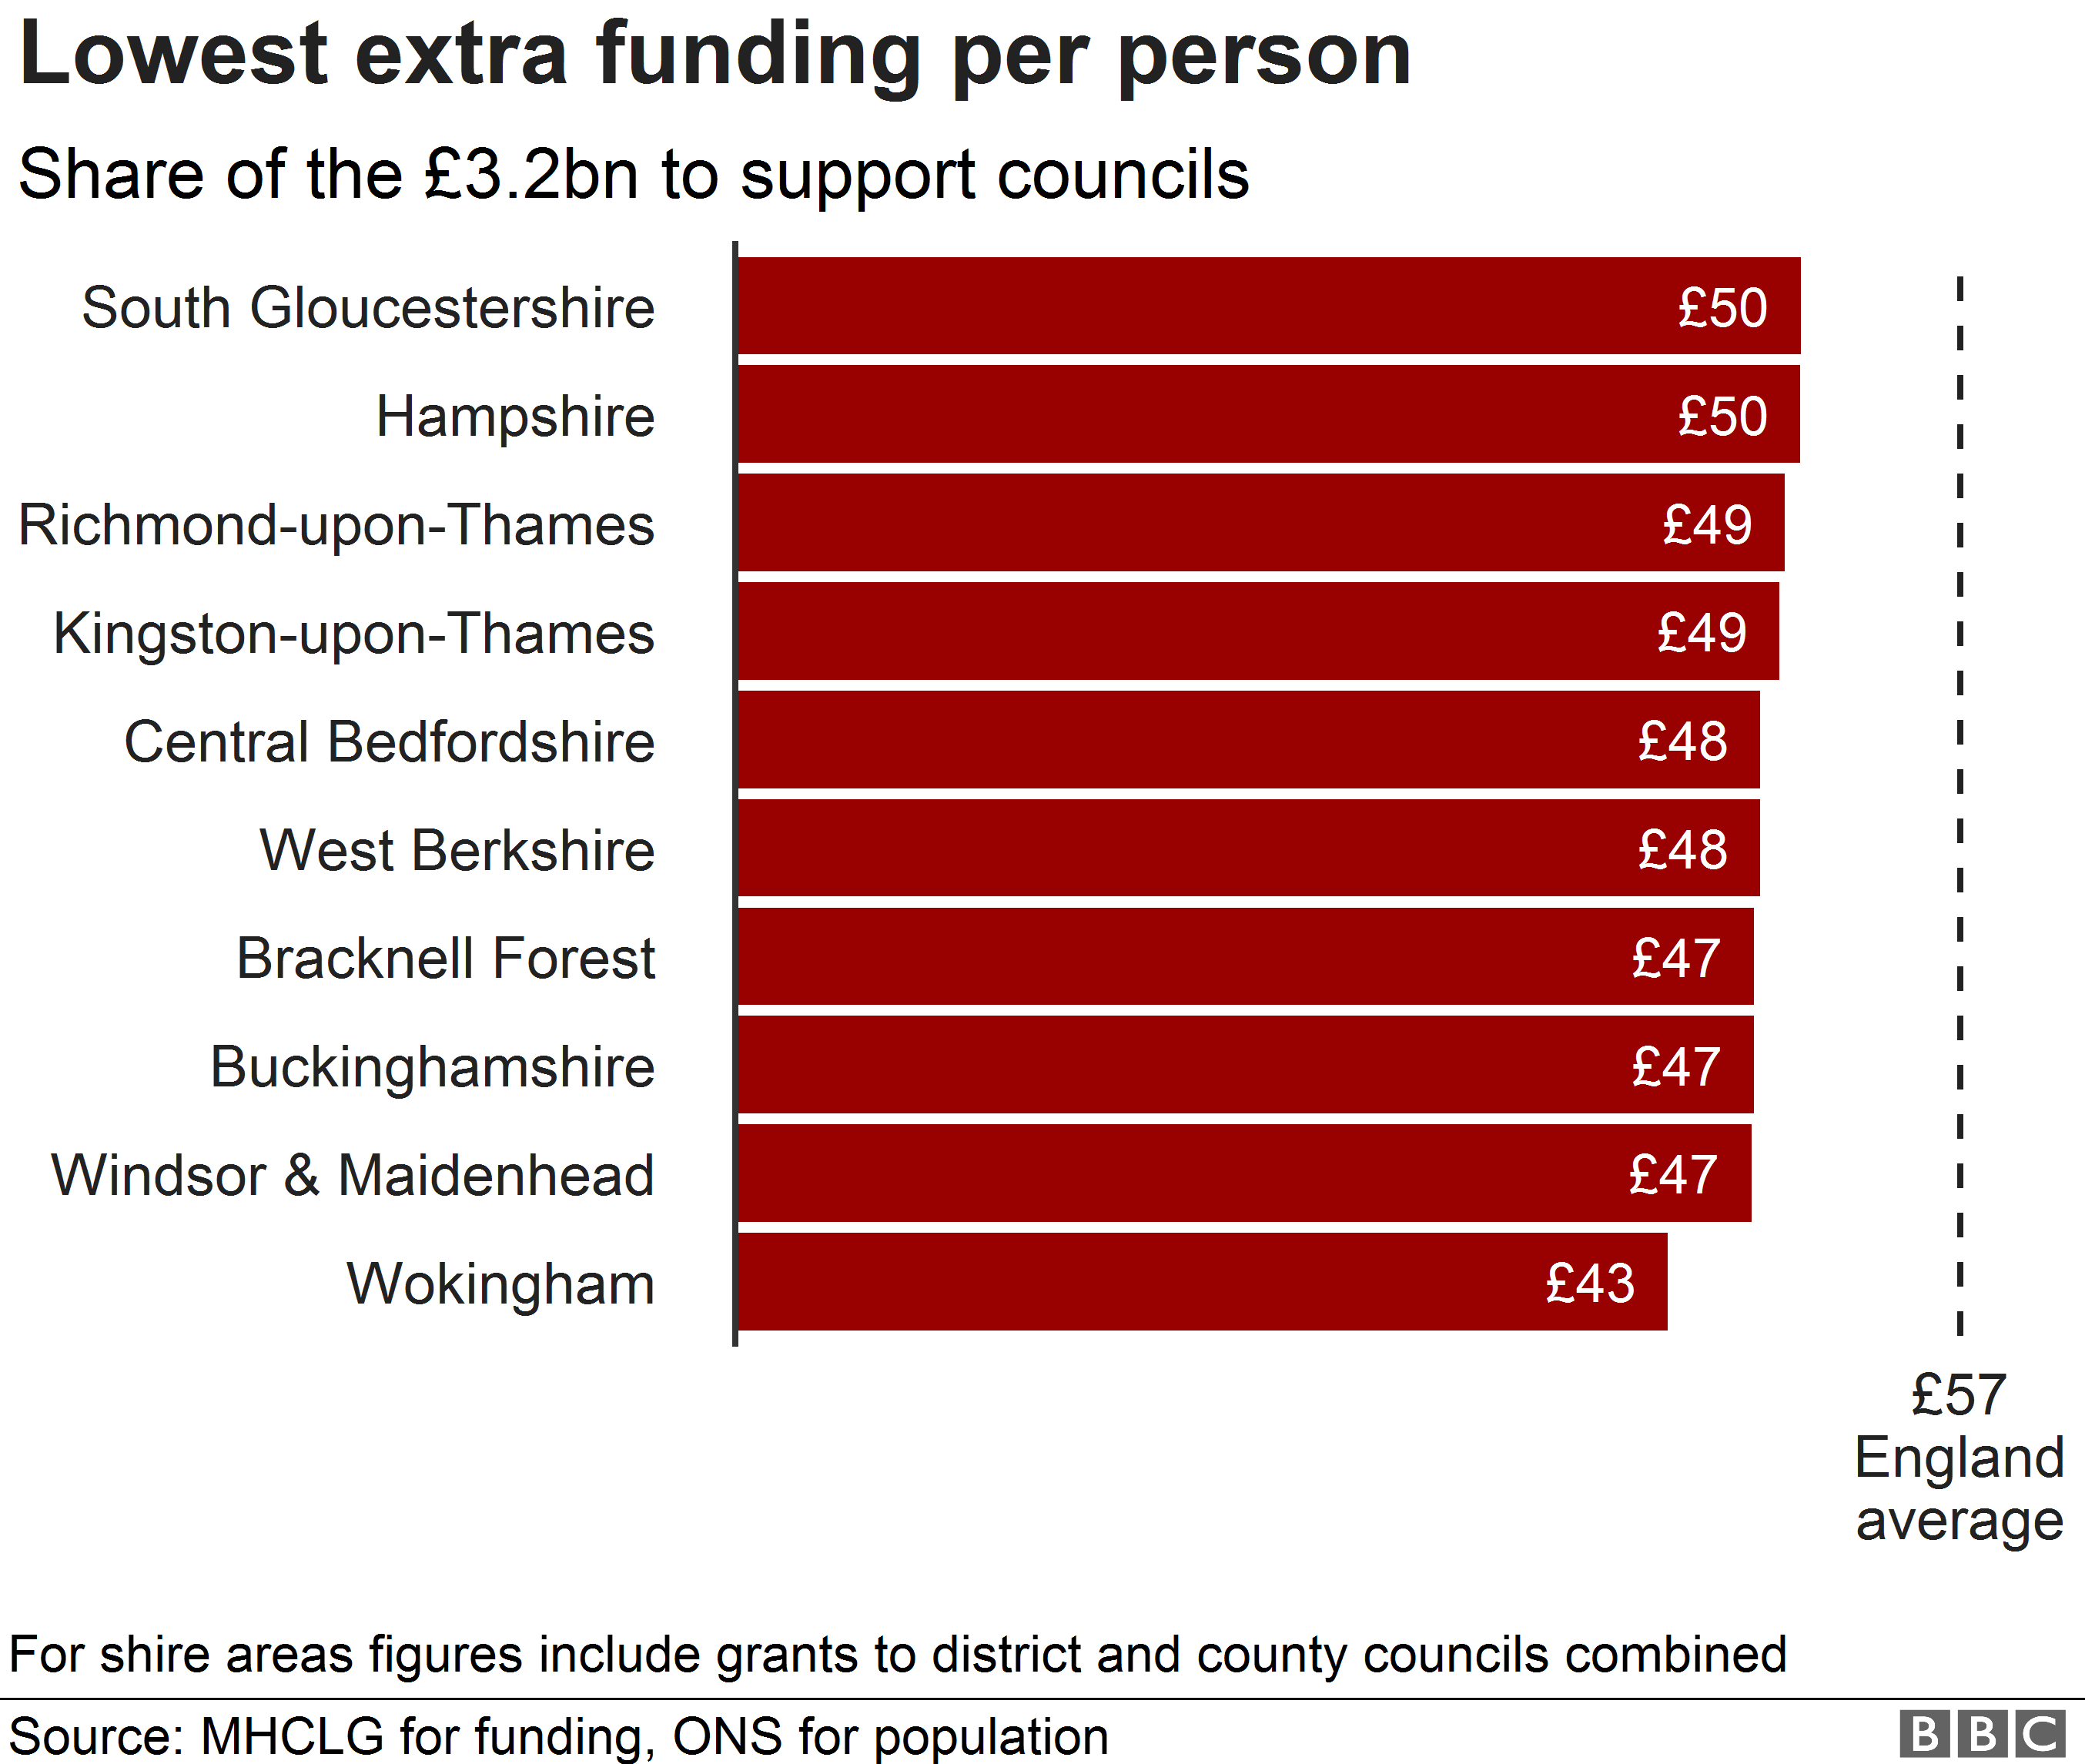 Chart showing lowest rates of funding per person